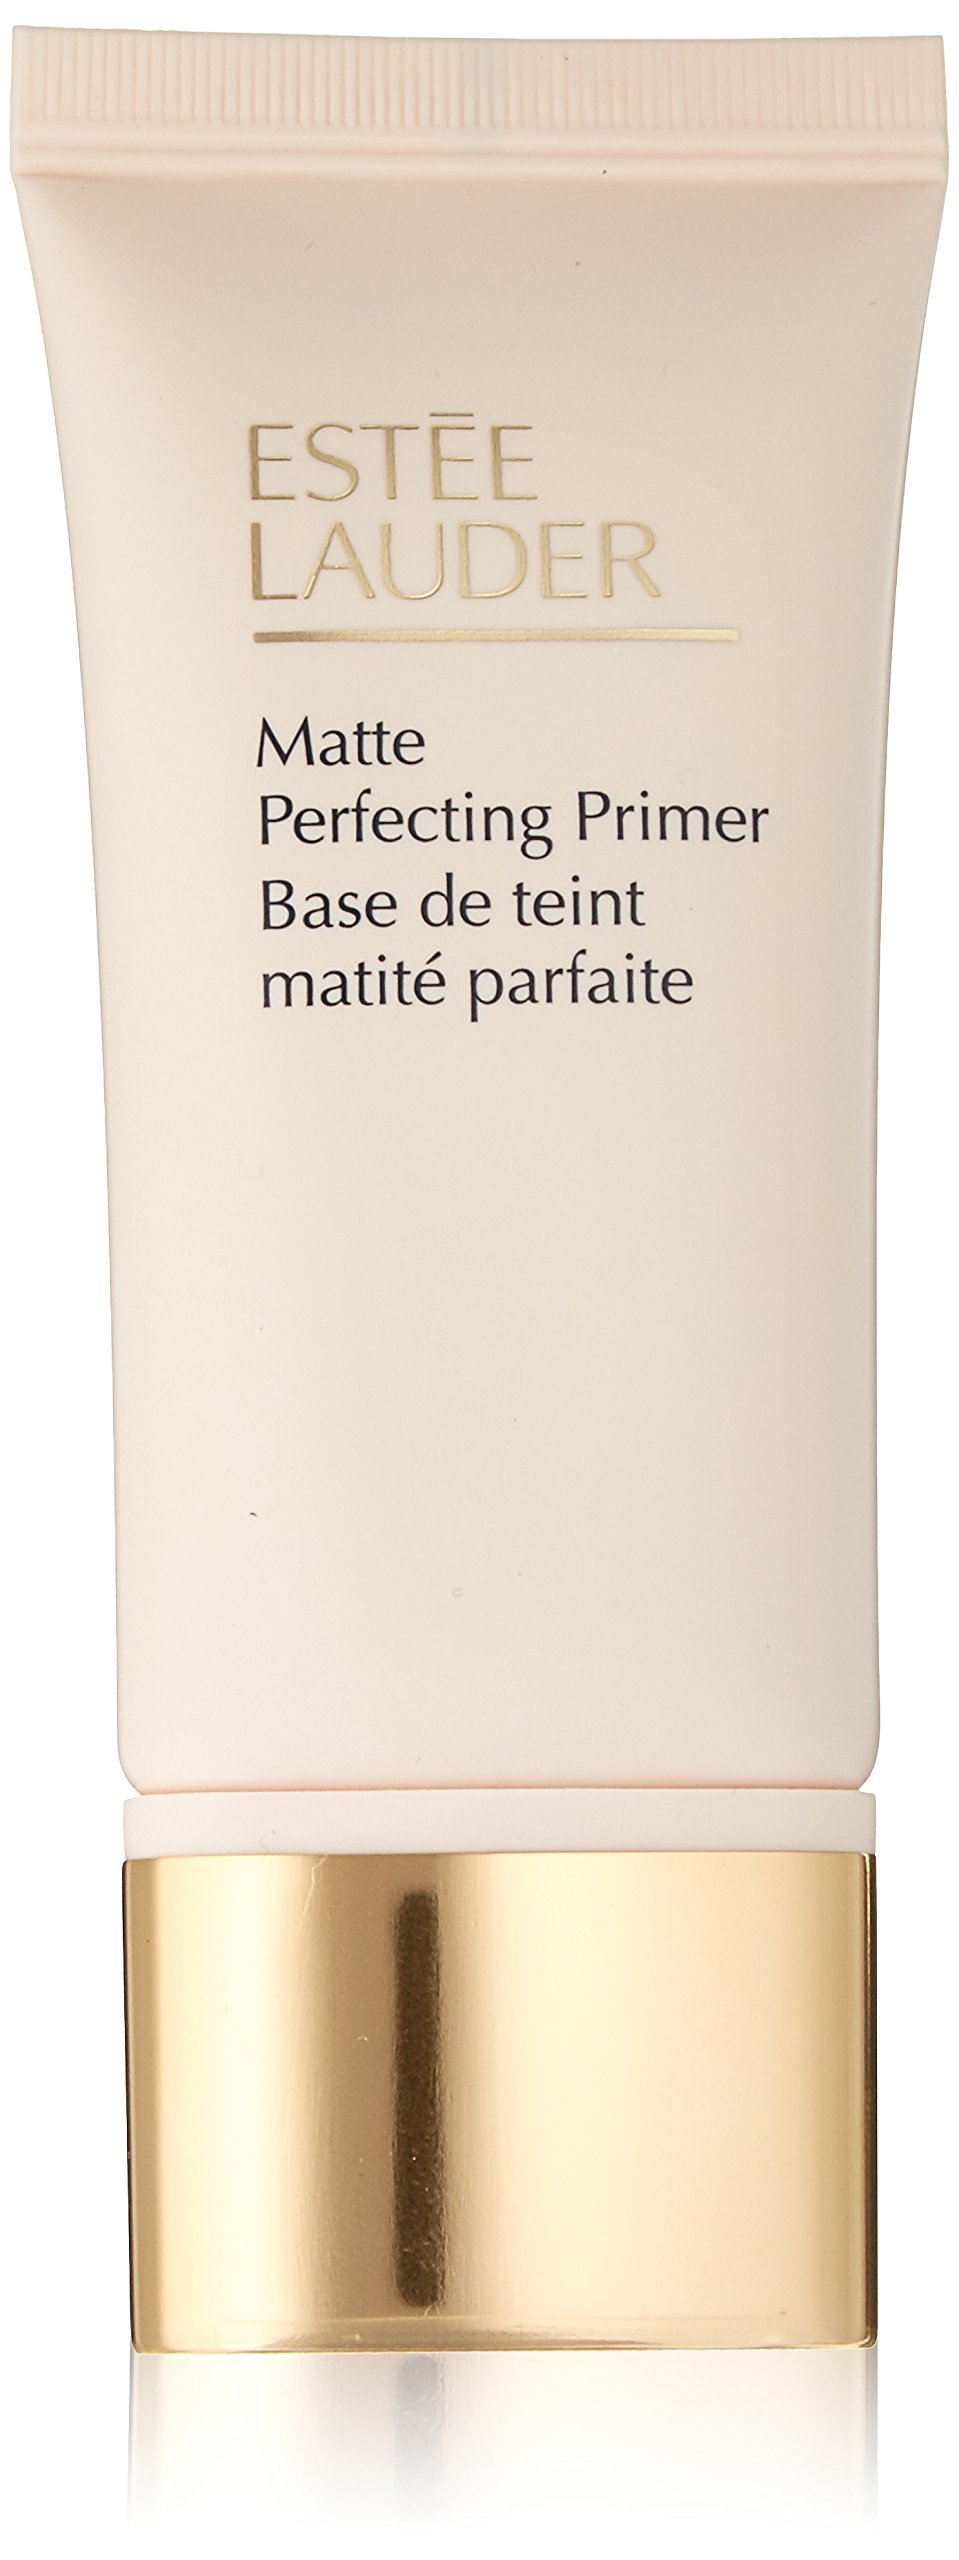 Estee Lauder Matte Perfecting Primer Normal/Combination Skin and Oily Skin for Women, 1.0 Ounce by Estee Lauder